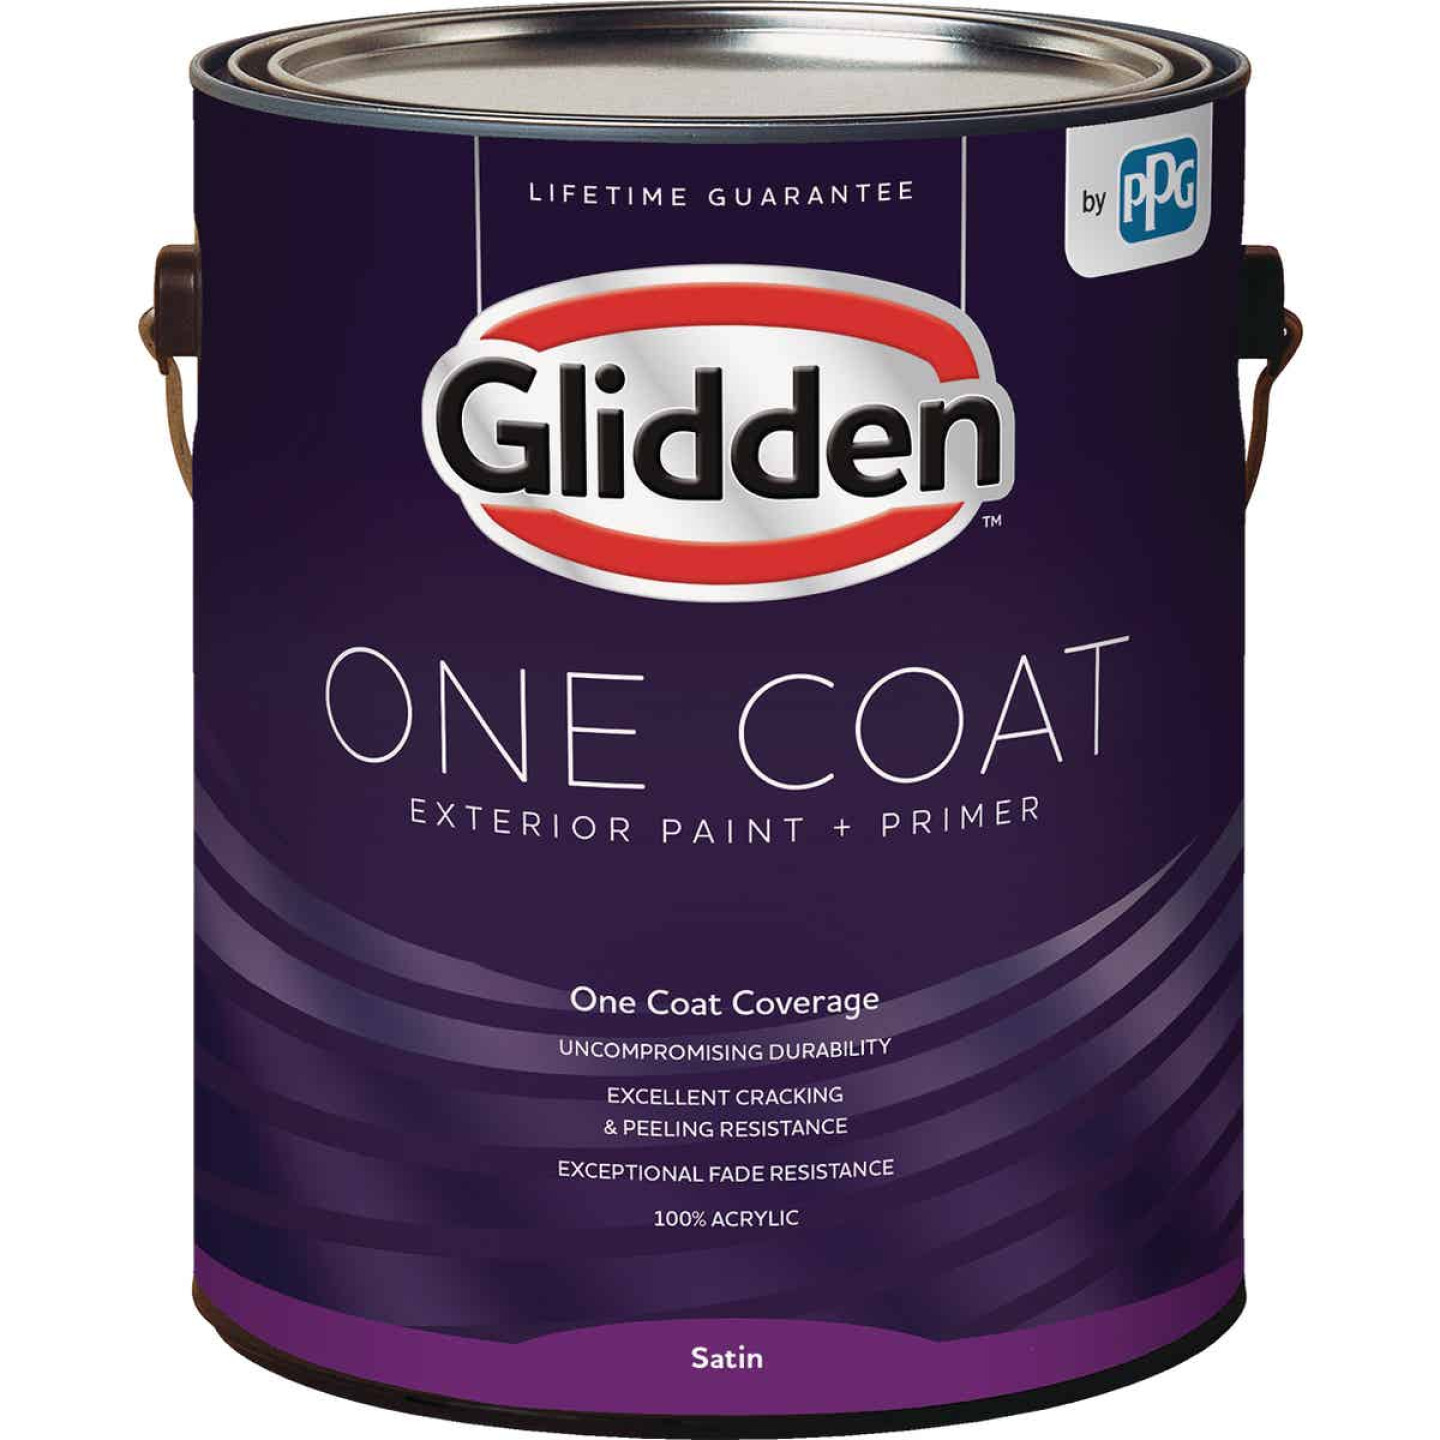 Glidden One Coat Exterior Paint + Primer Satin Ultra Deep Base 1 Gallon Image 1